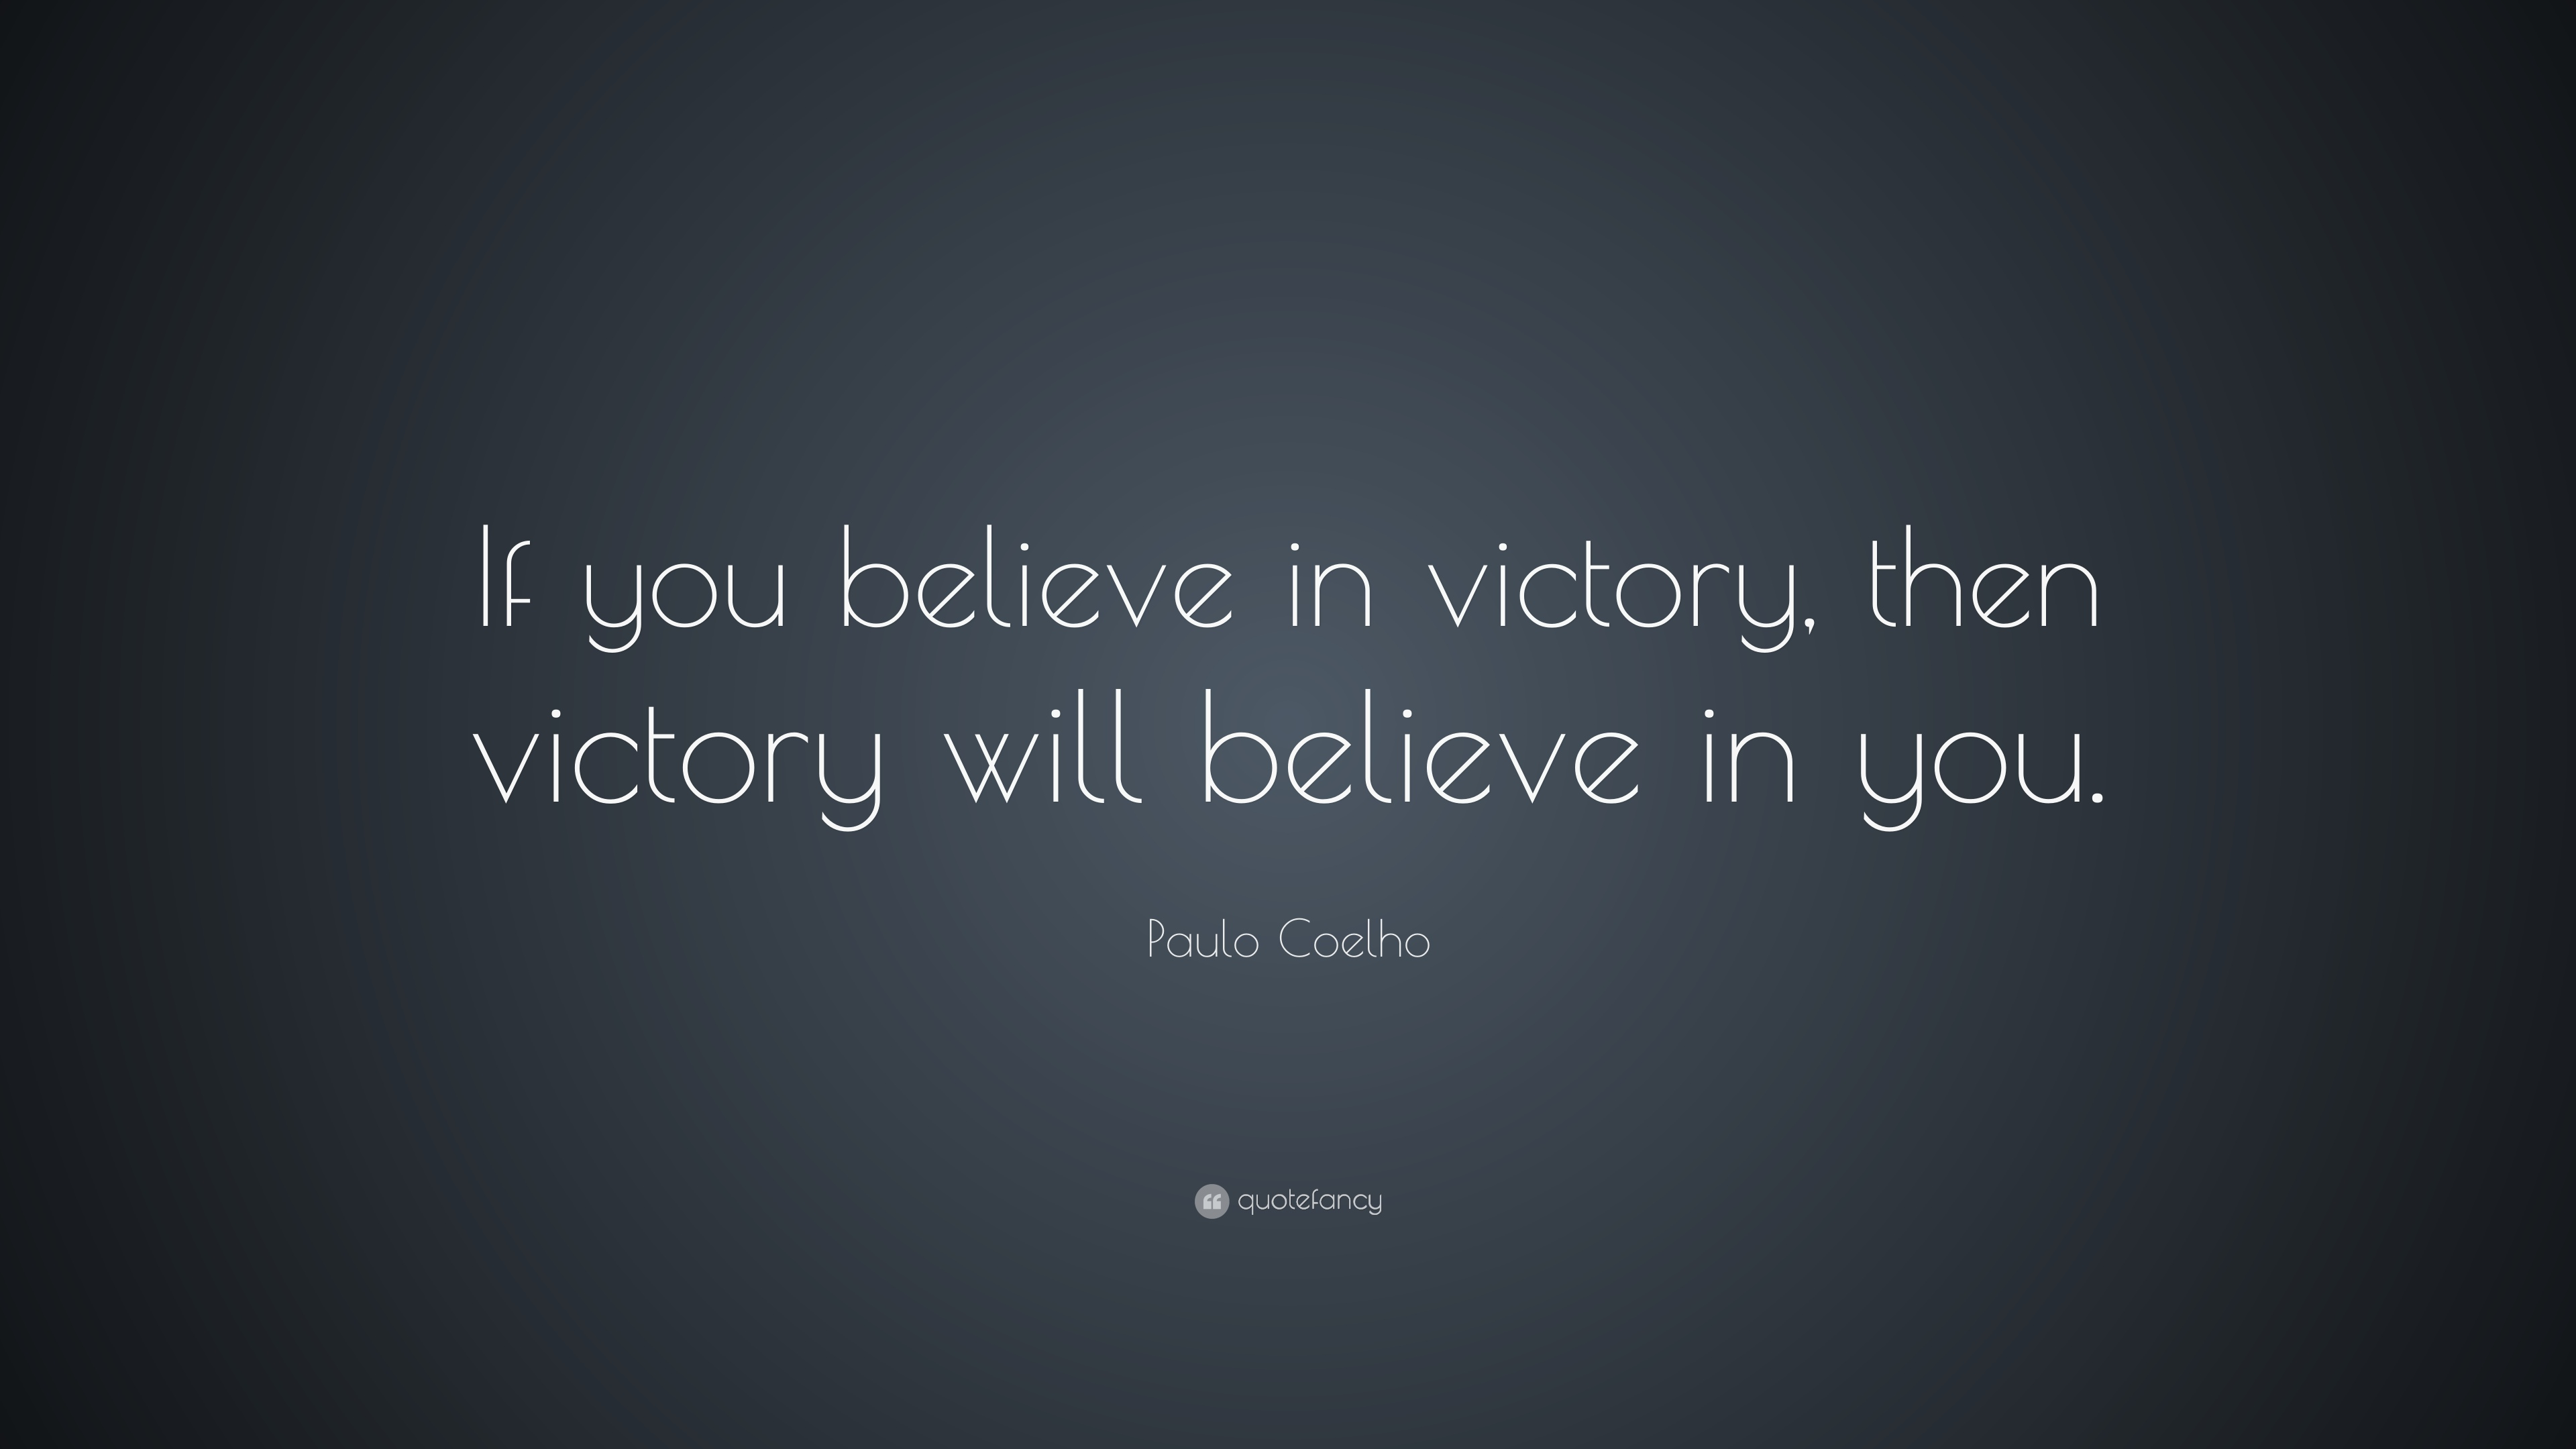 Paulo coelho quote if you believe in victory then victory will believe in